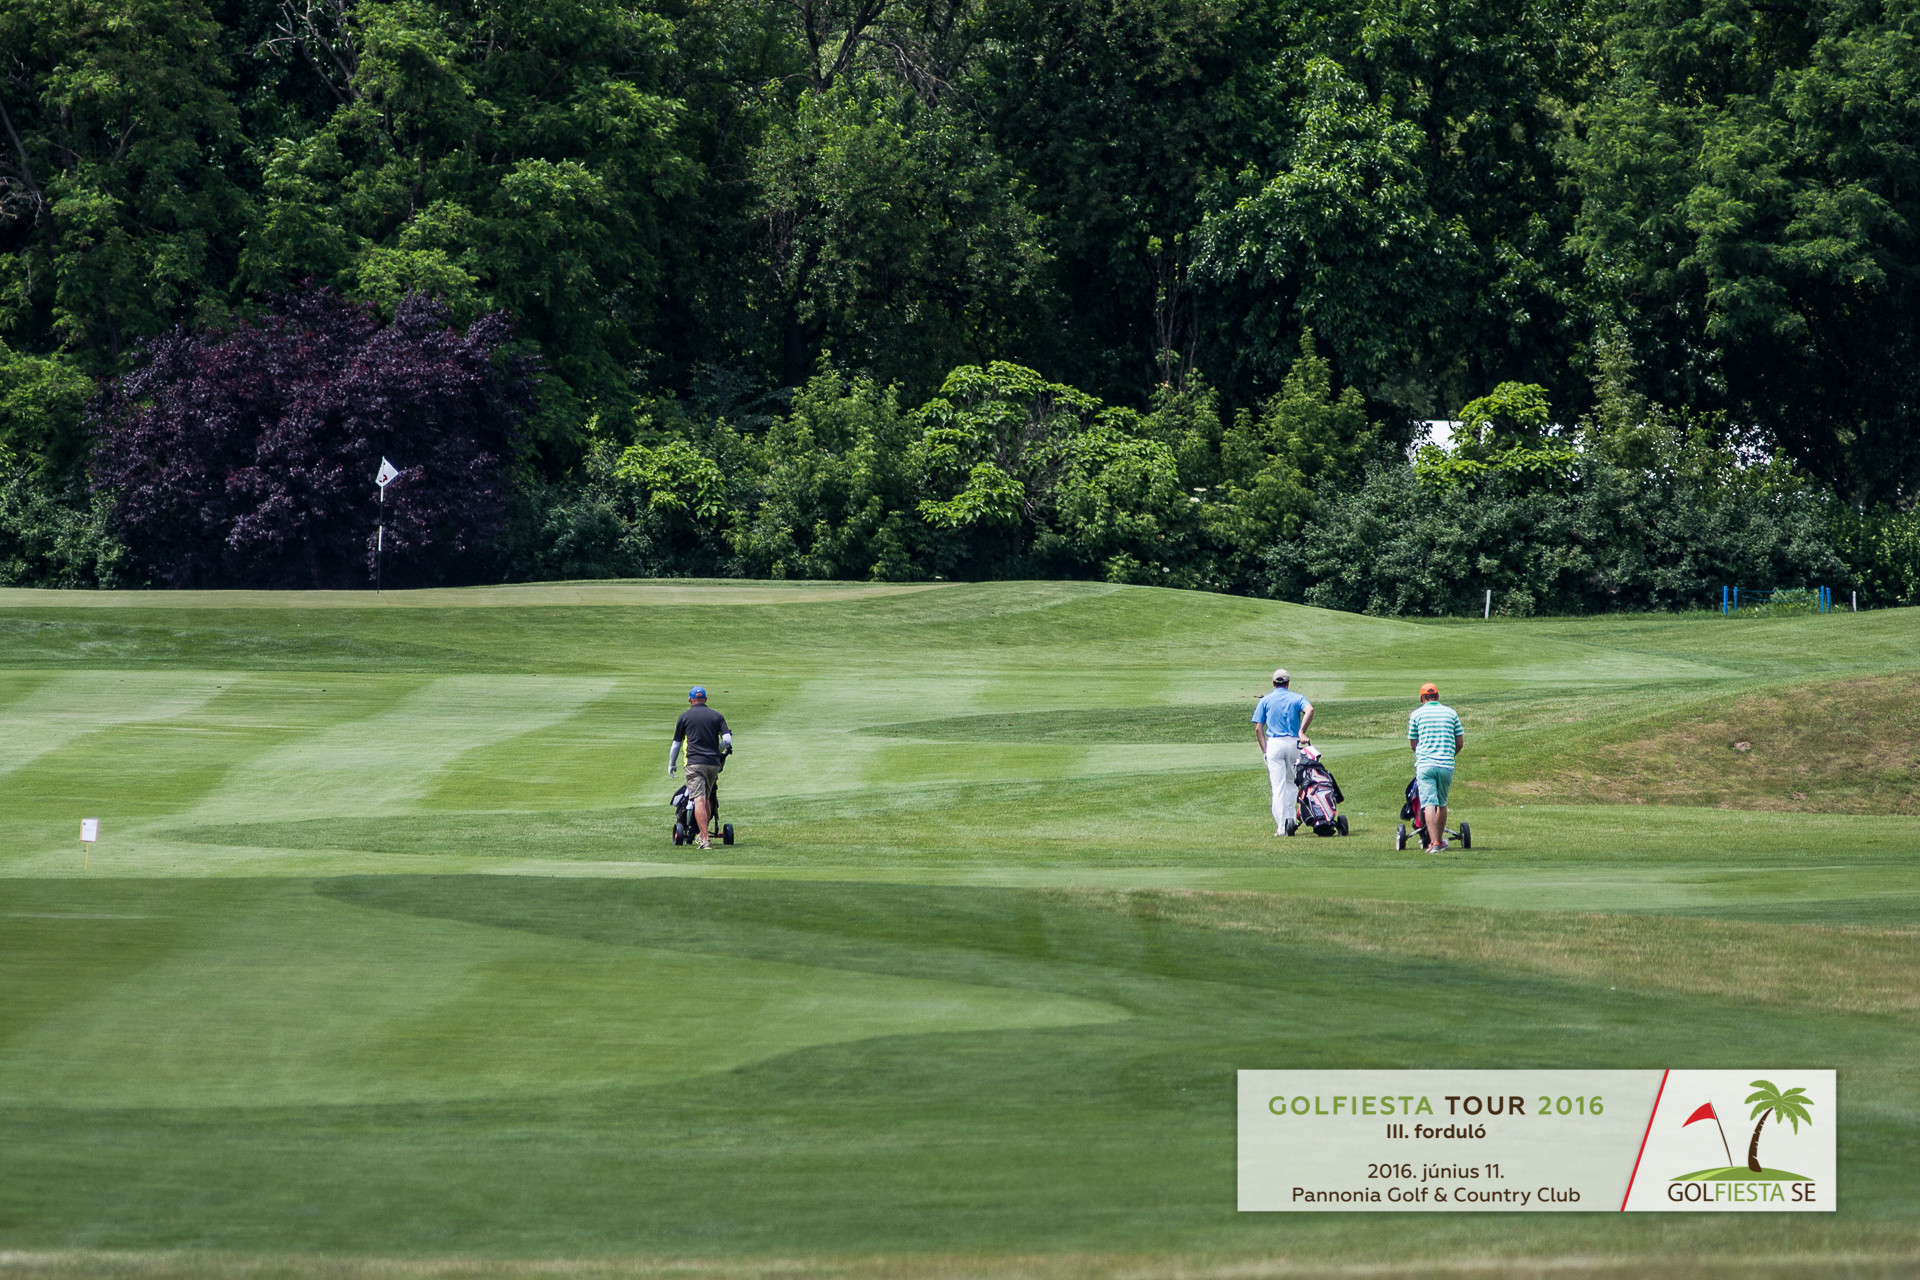 GF TOUR 2016 / III. – Pannonia Golf & Country Club